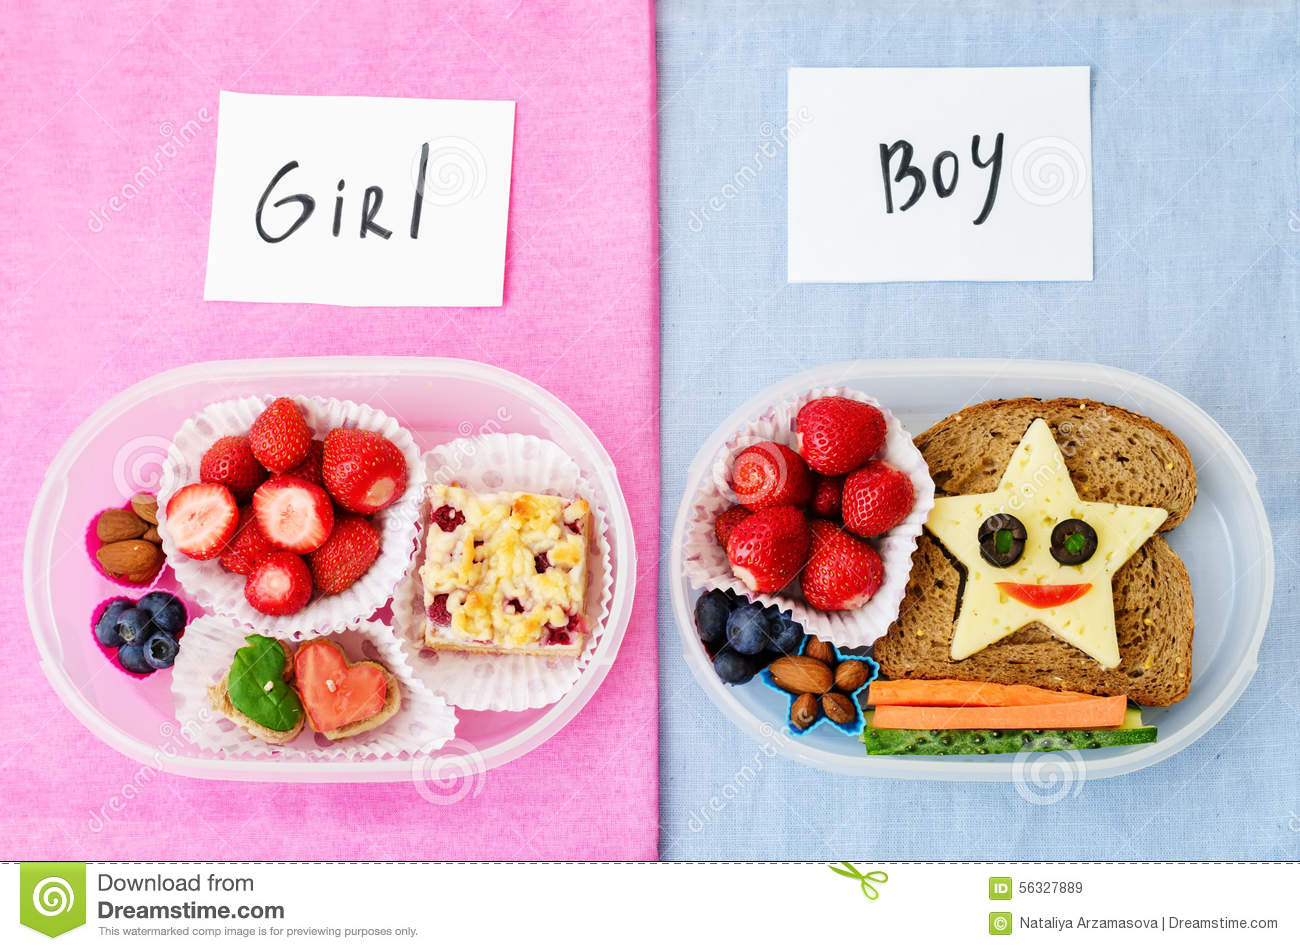 Fun box funny picture funny pic pic of fun funny image - Food Form Funny